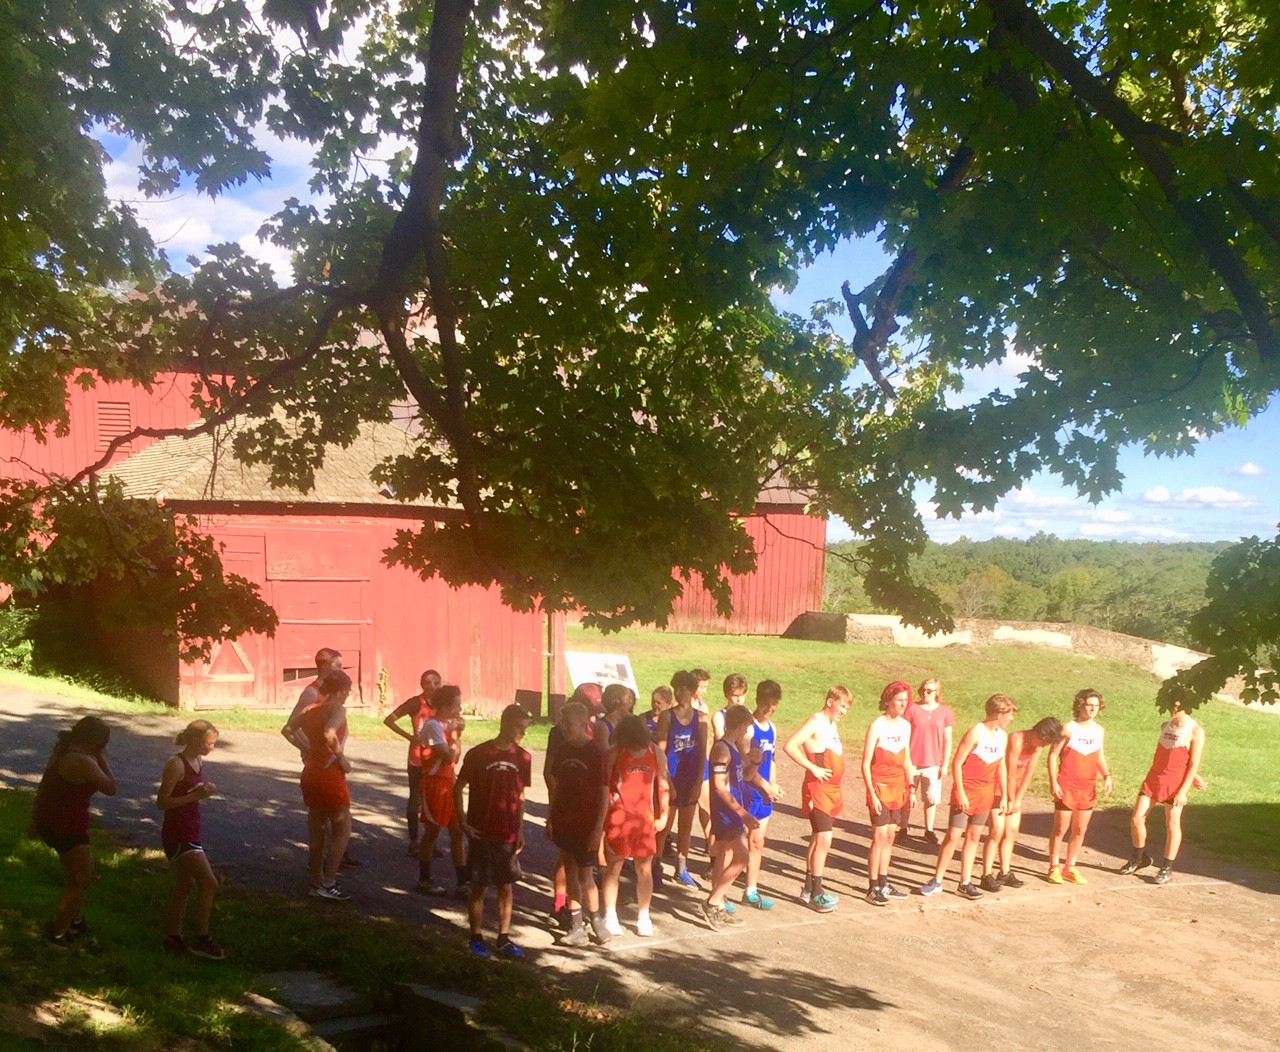 Runners at the starting line for first cross country meet